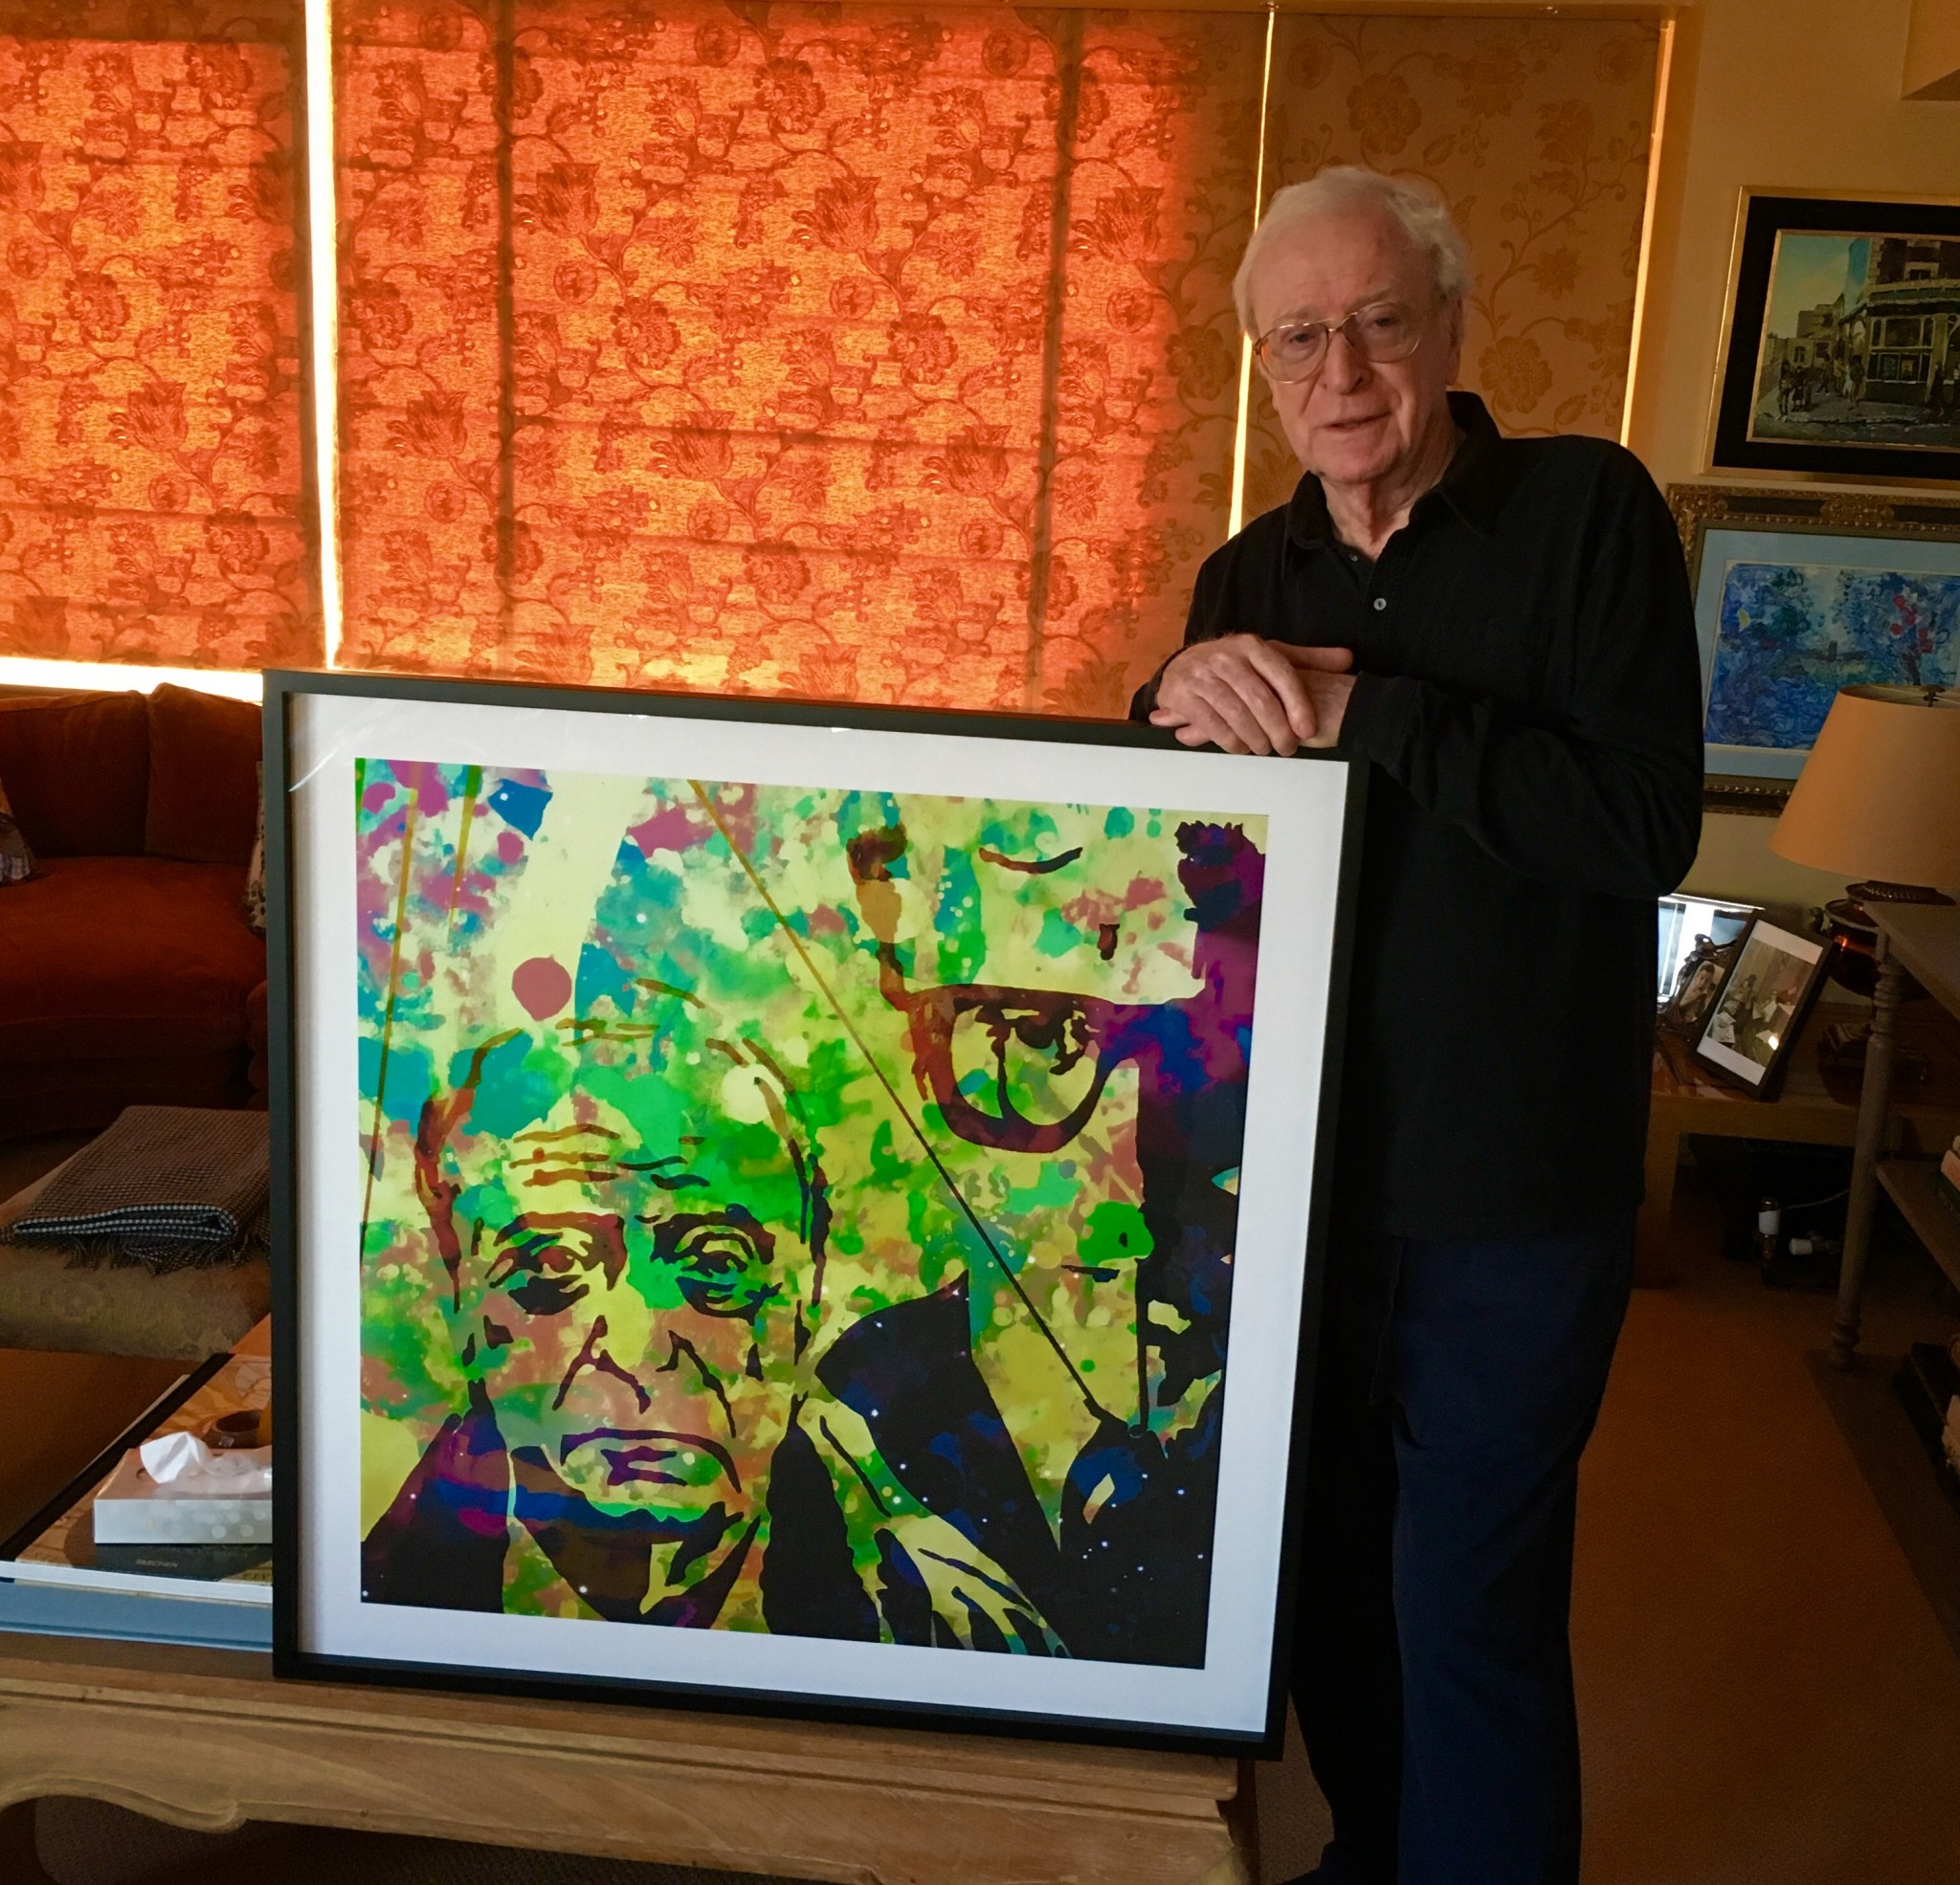 Michael Caine with his Lincoln Townley portrait